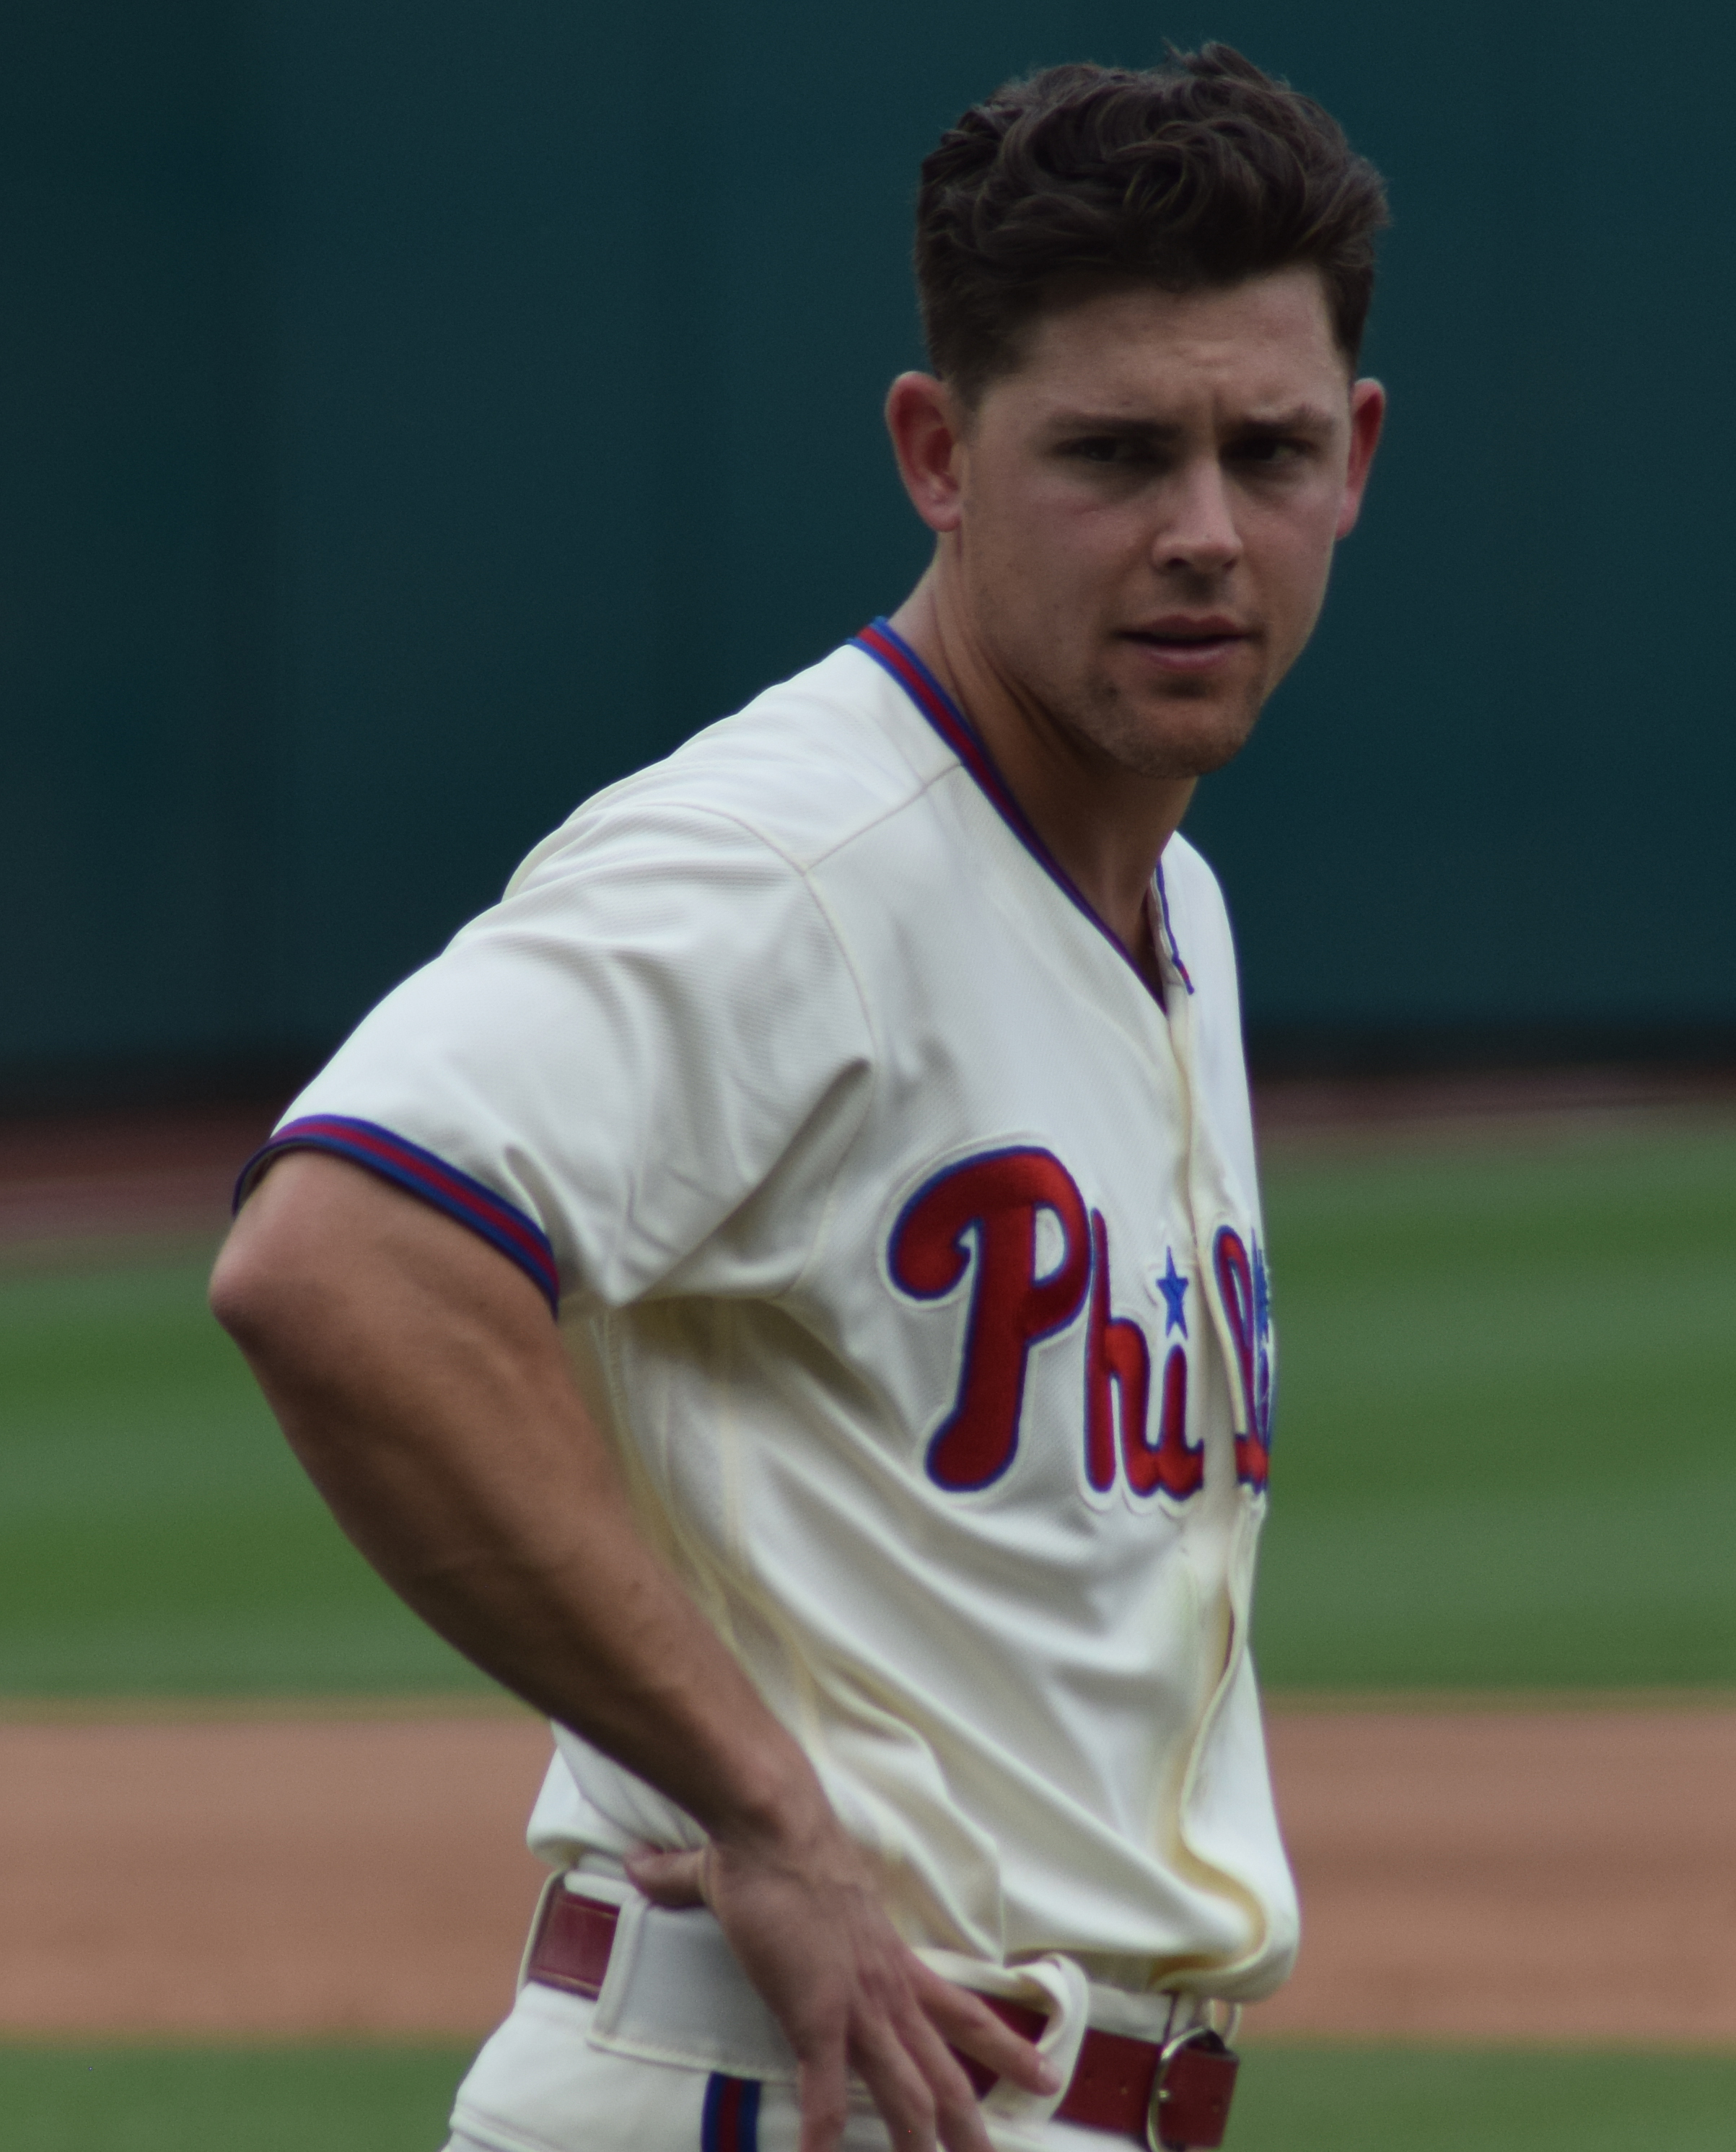 August 16, 2019 -- Led by starting pitcher Vince Velasquez, the Phillies defeated the Padres at home, 8 to 4. The Phillies pitching was helped by Logan Morrison on offence.